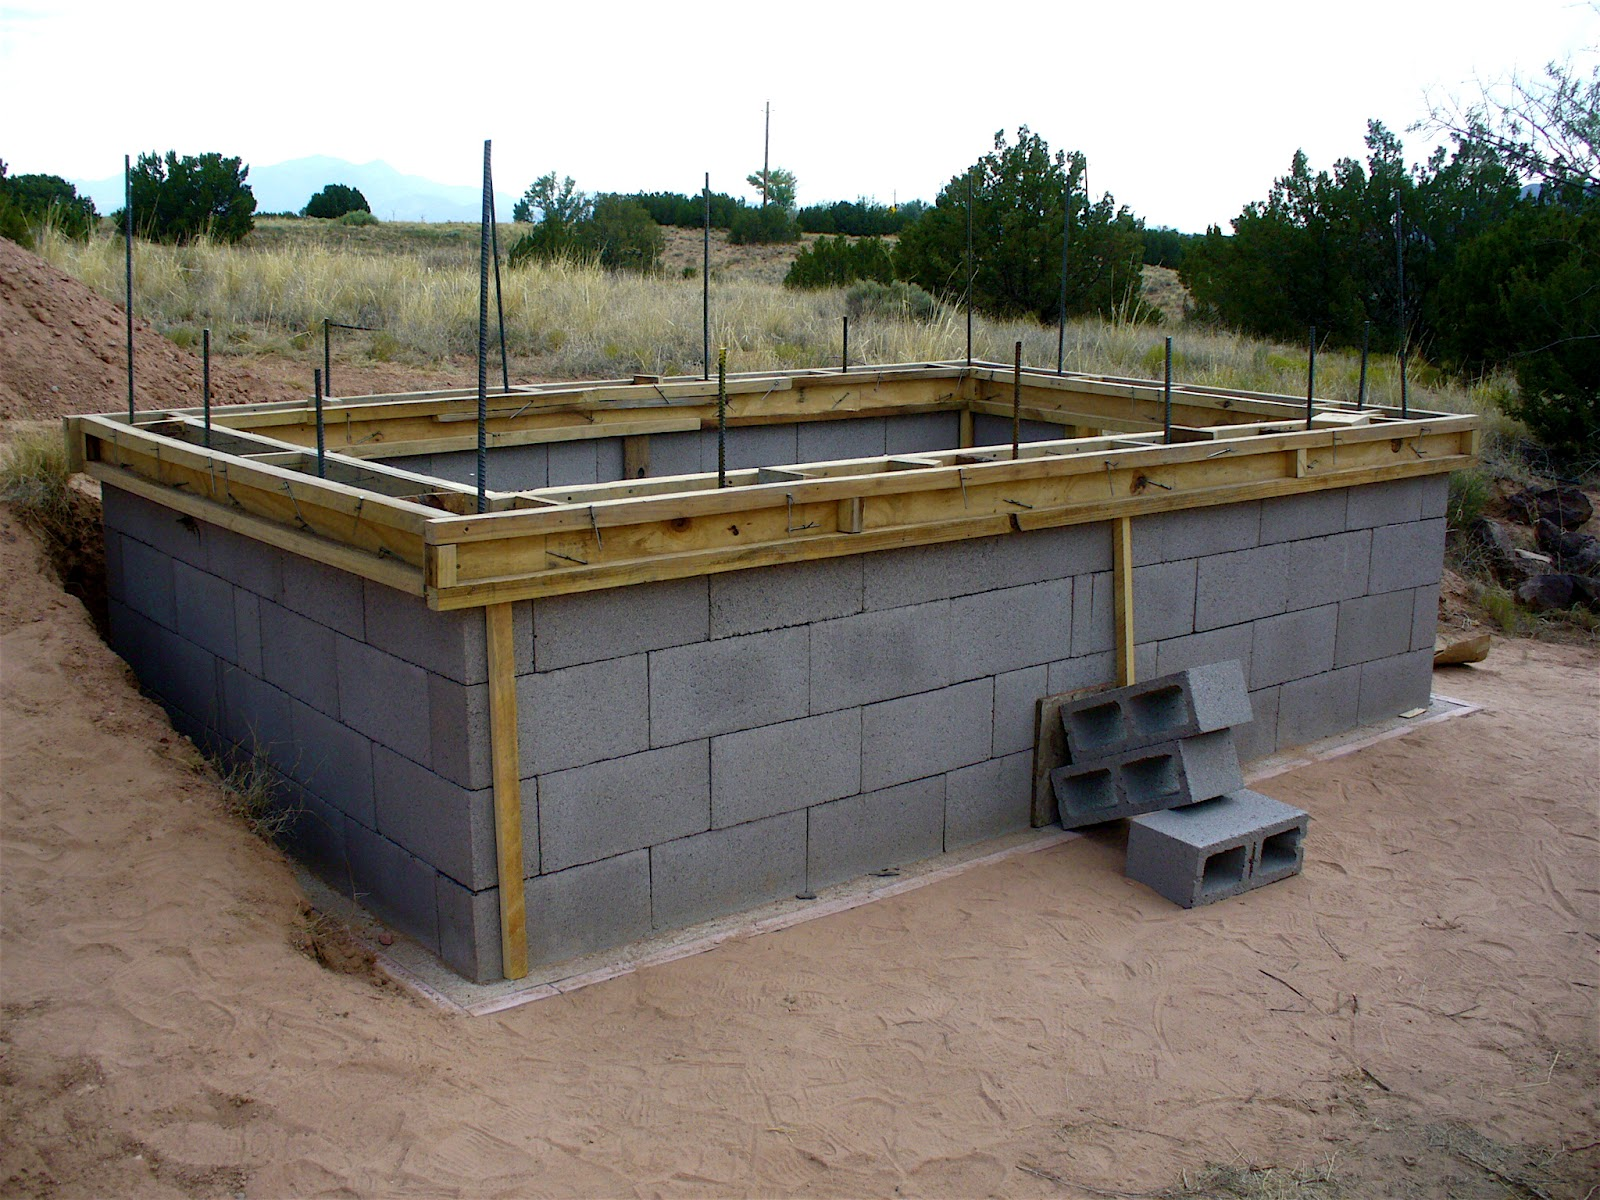 Alt. Build Blog: Building A Well House #2: Dry Stack